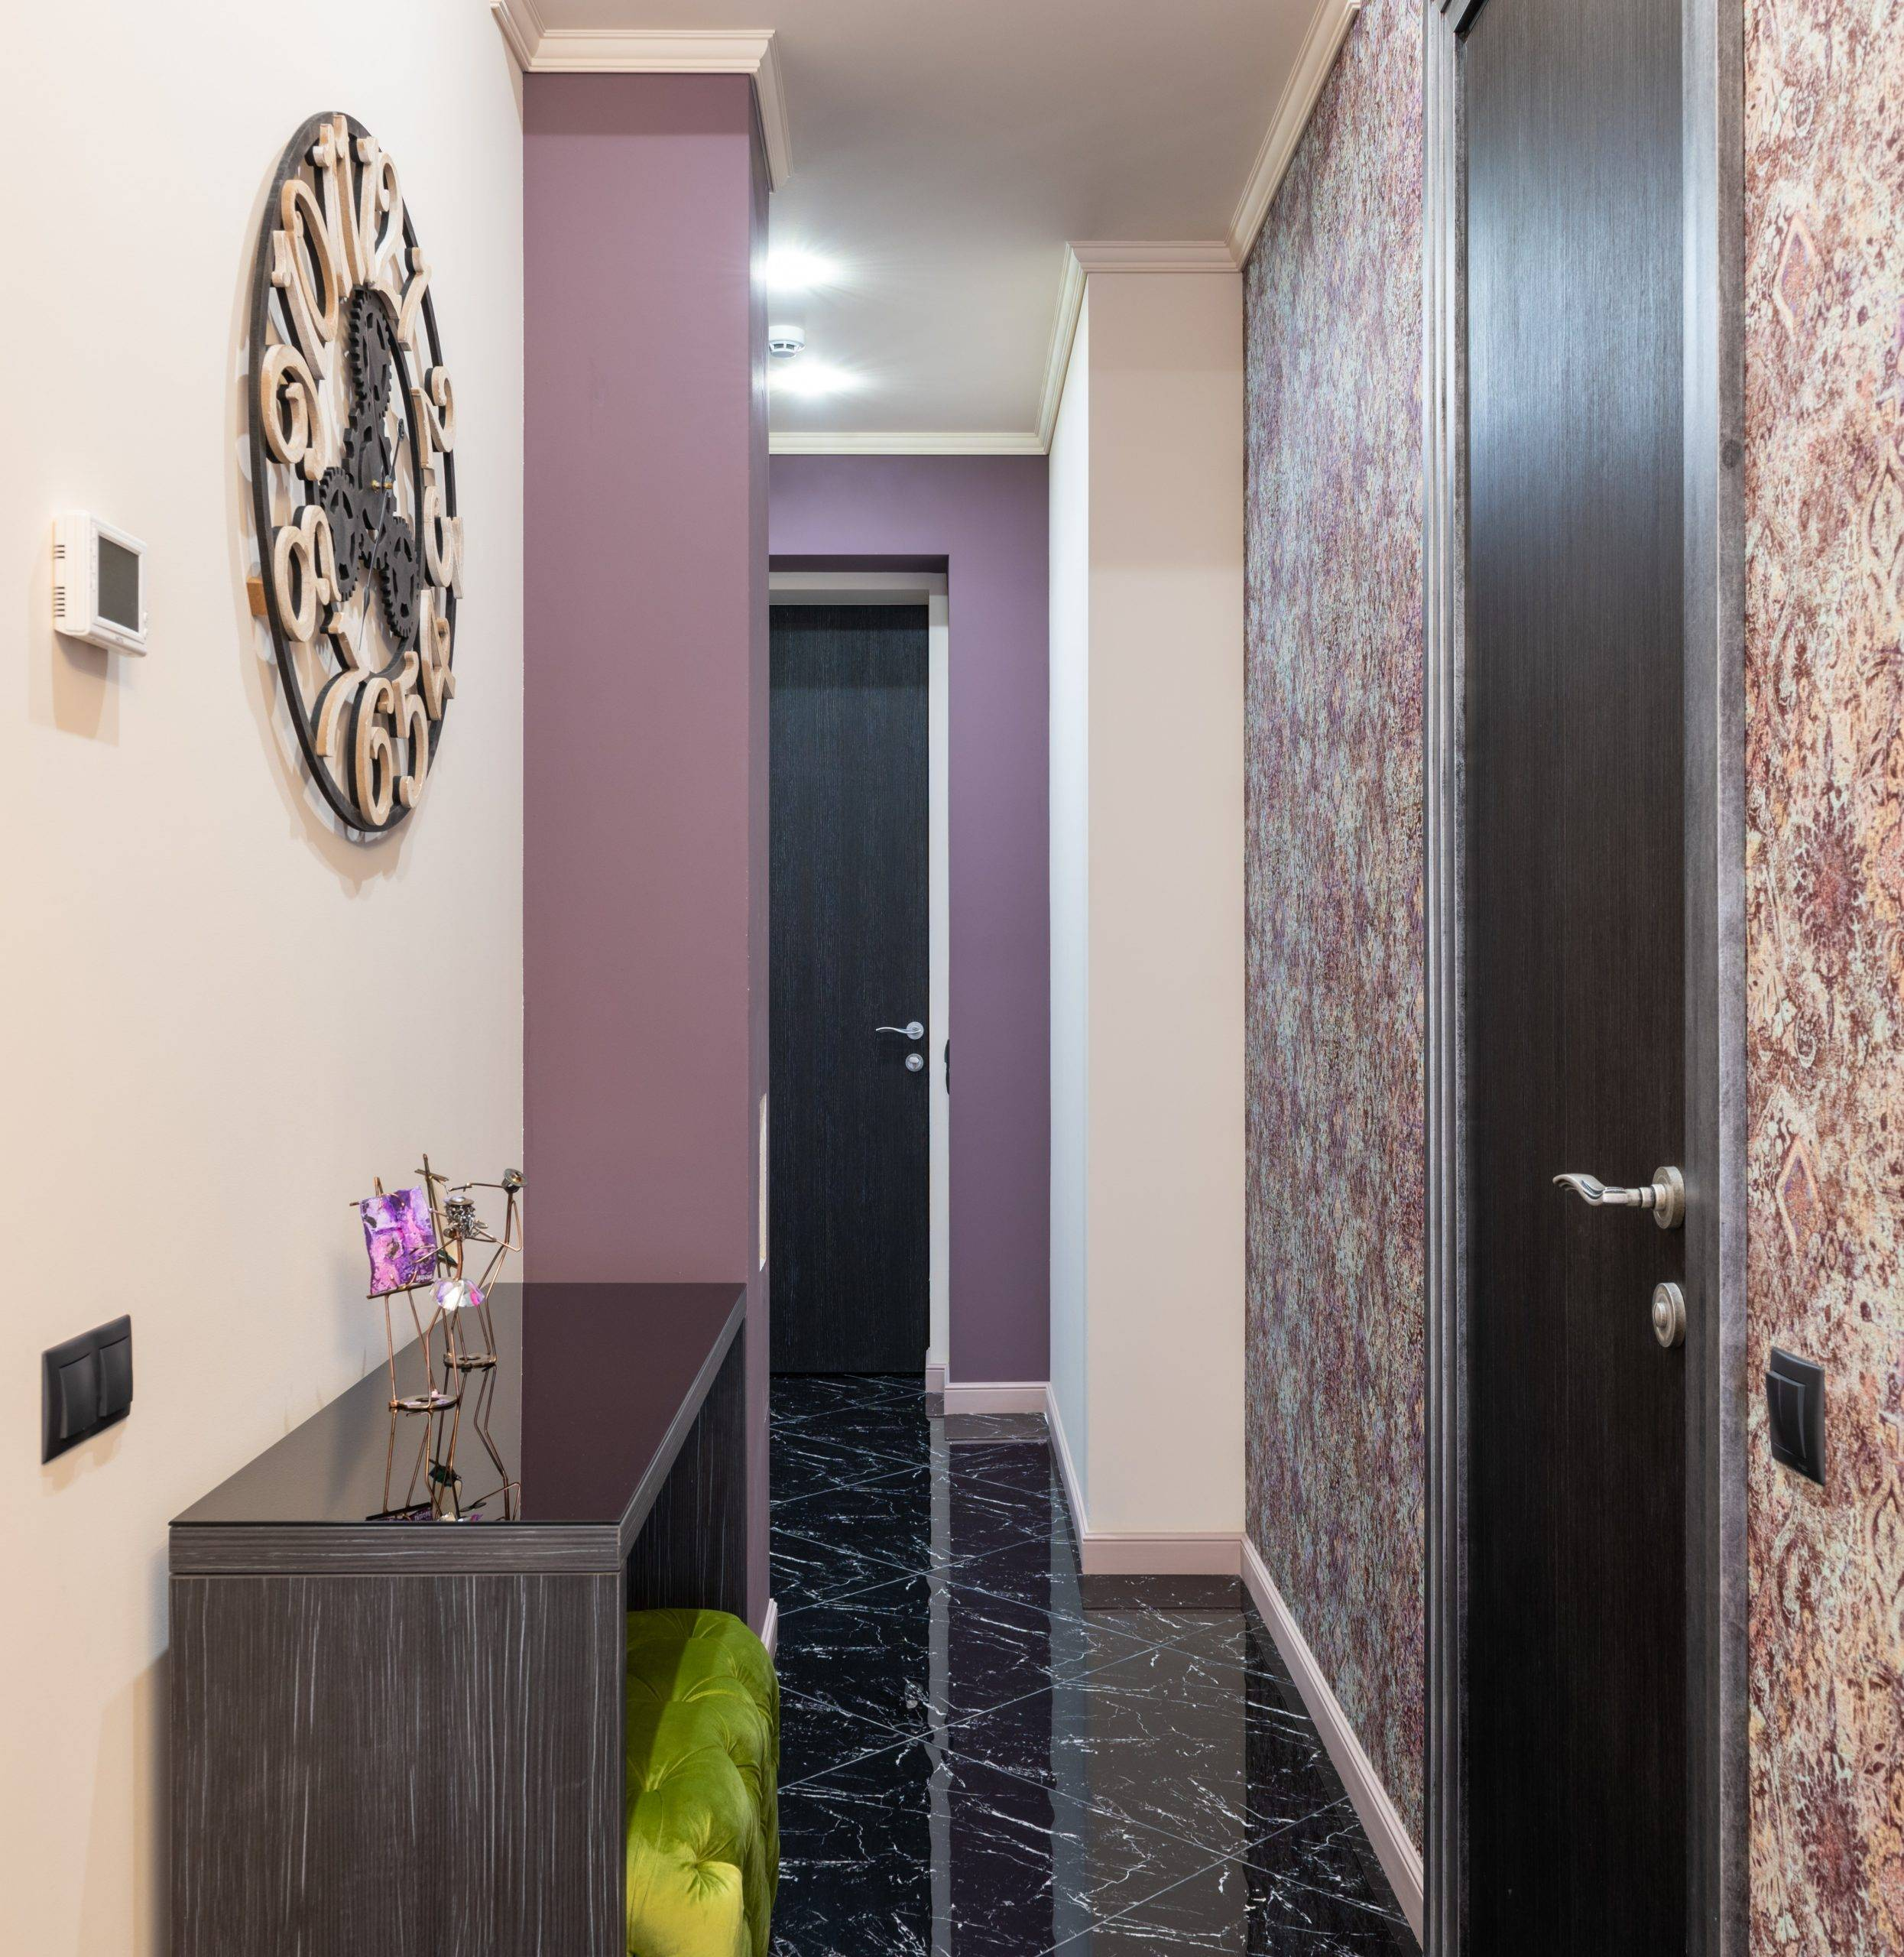 Hallway with lavender walls and huge round clock